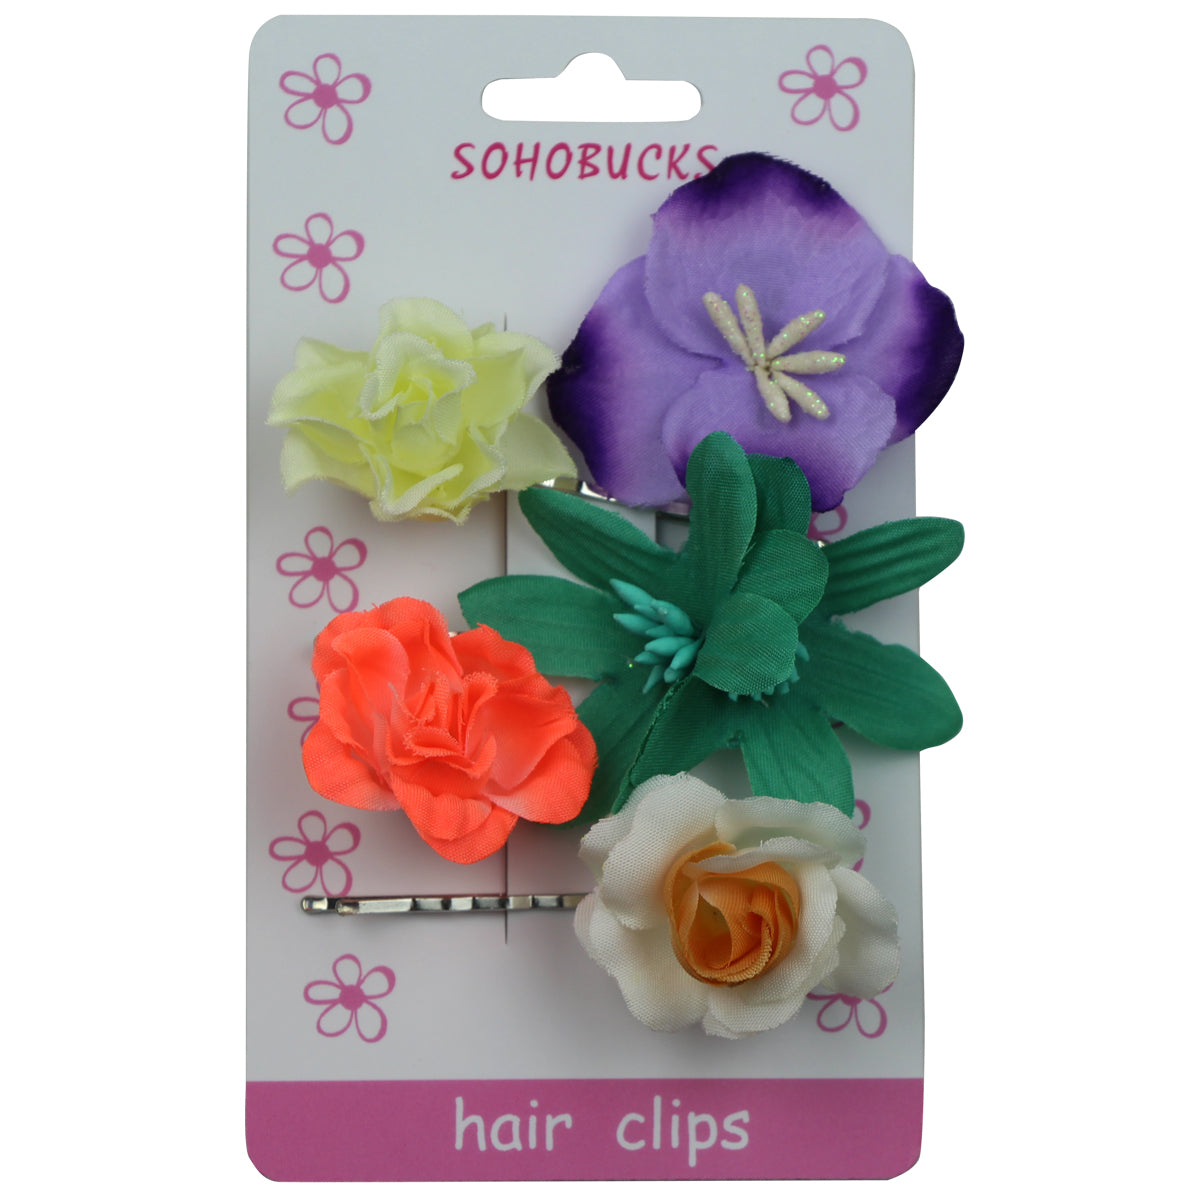 Rose orchid lily flower hair slide clip floral hair accessories set 1064 - SOHOBUCKS CO.,LIMITED